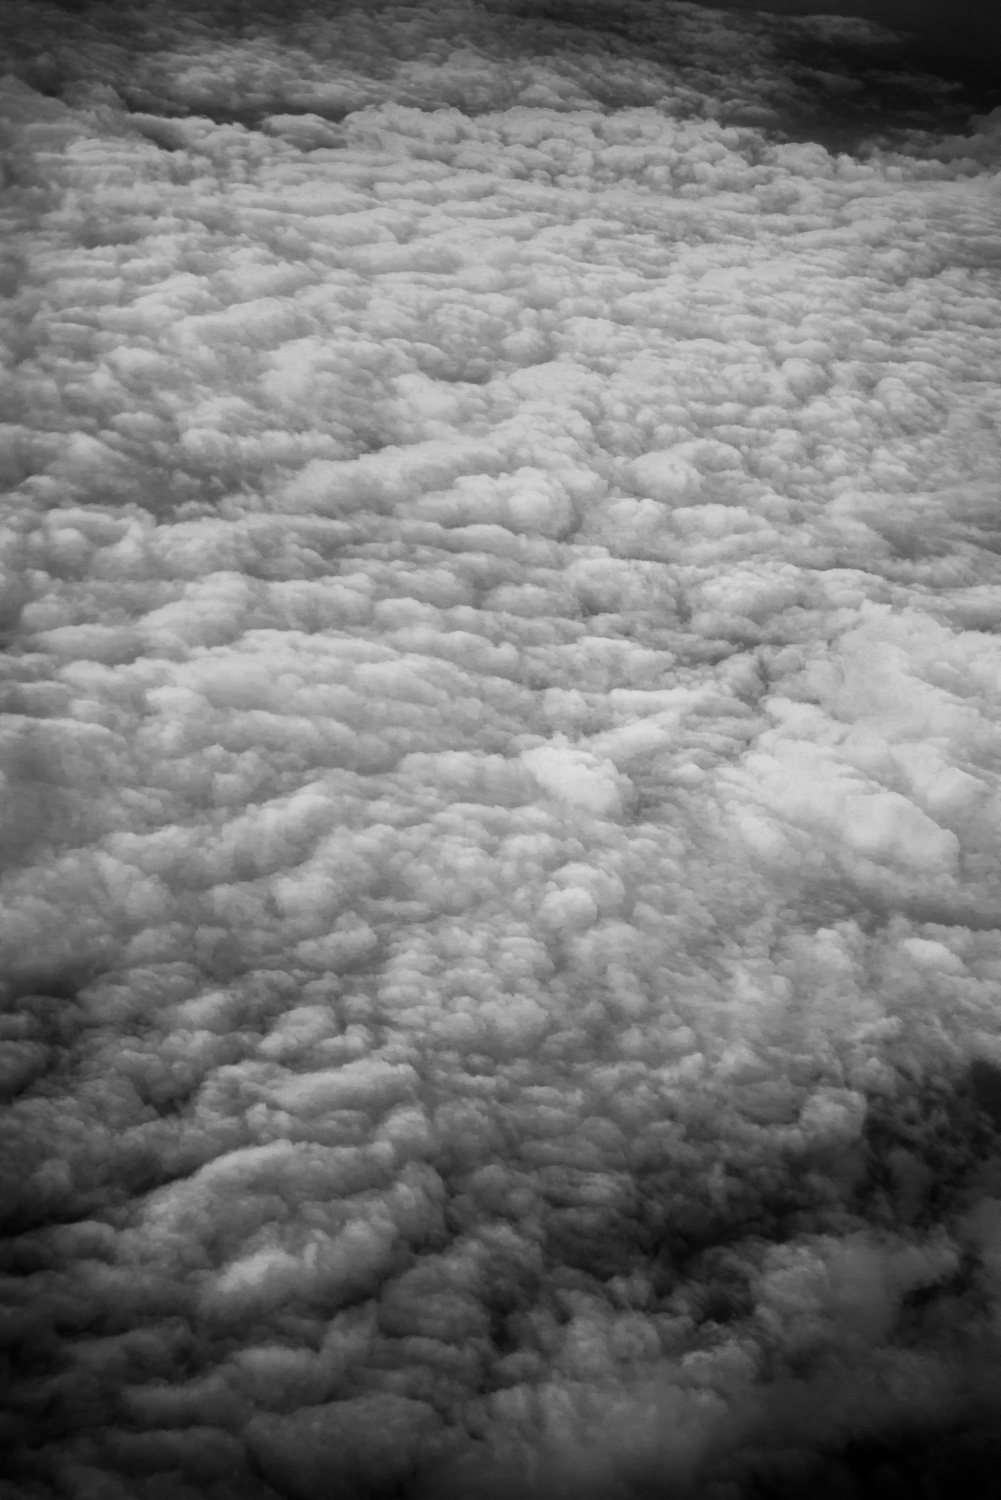 Cloud field from Delta Airlines, © Robert Welkie 2016